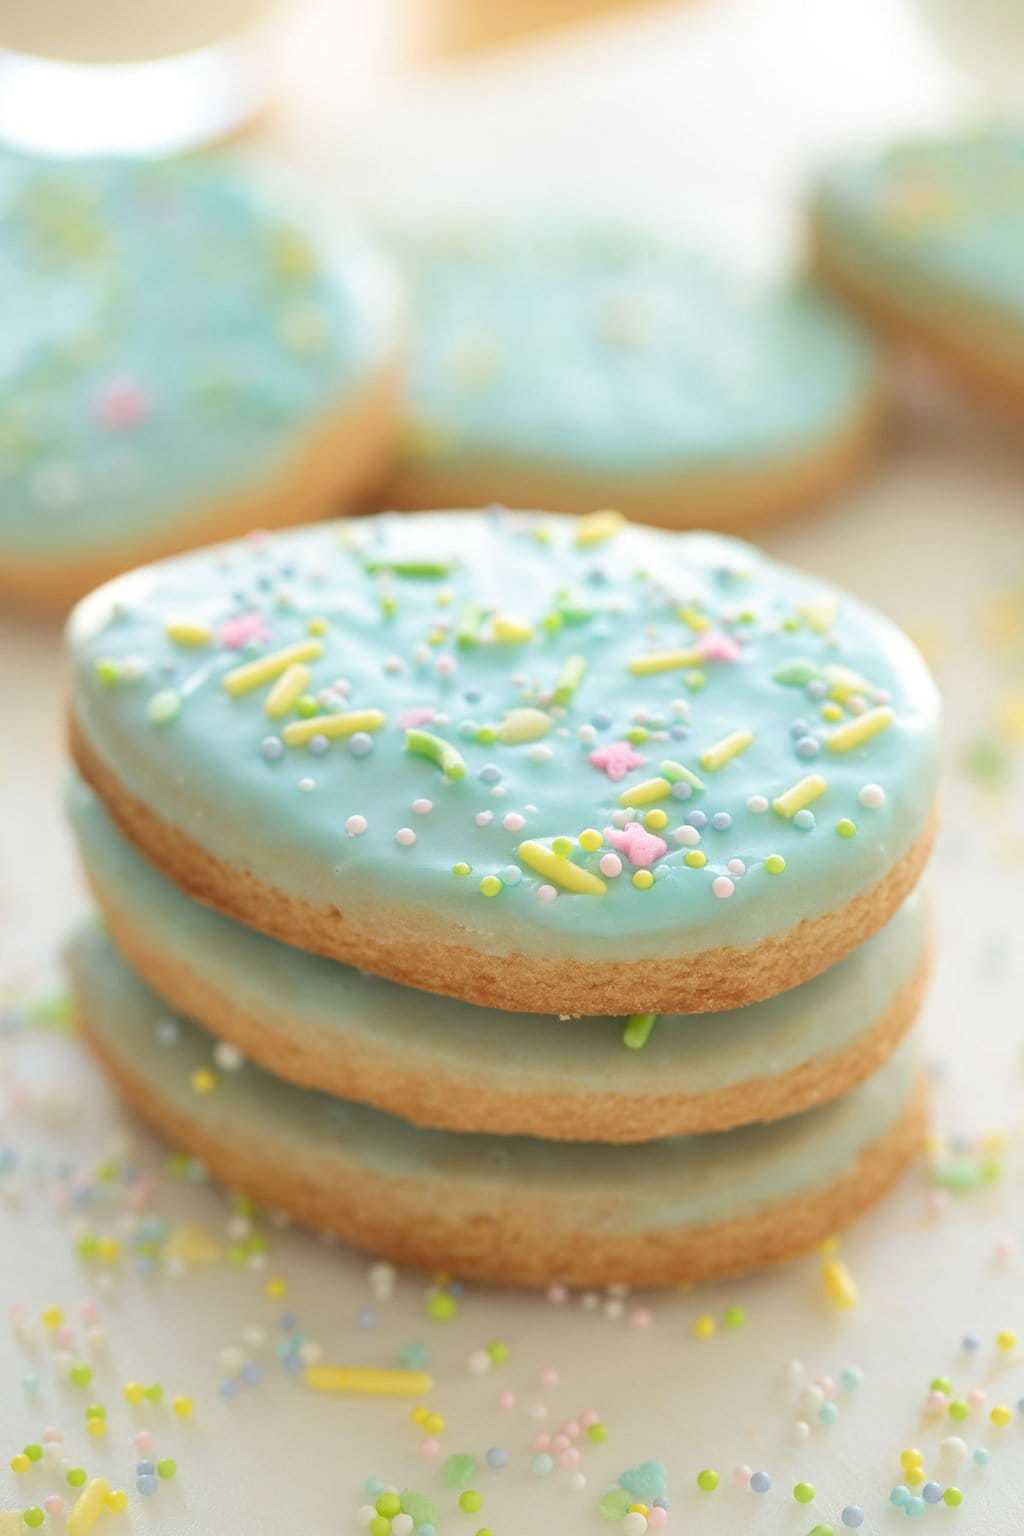 Close up photo of a stack of decorated shortbread cookies with sprinkles